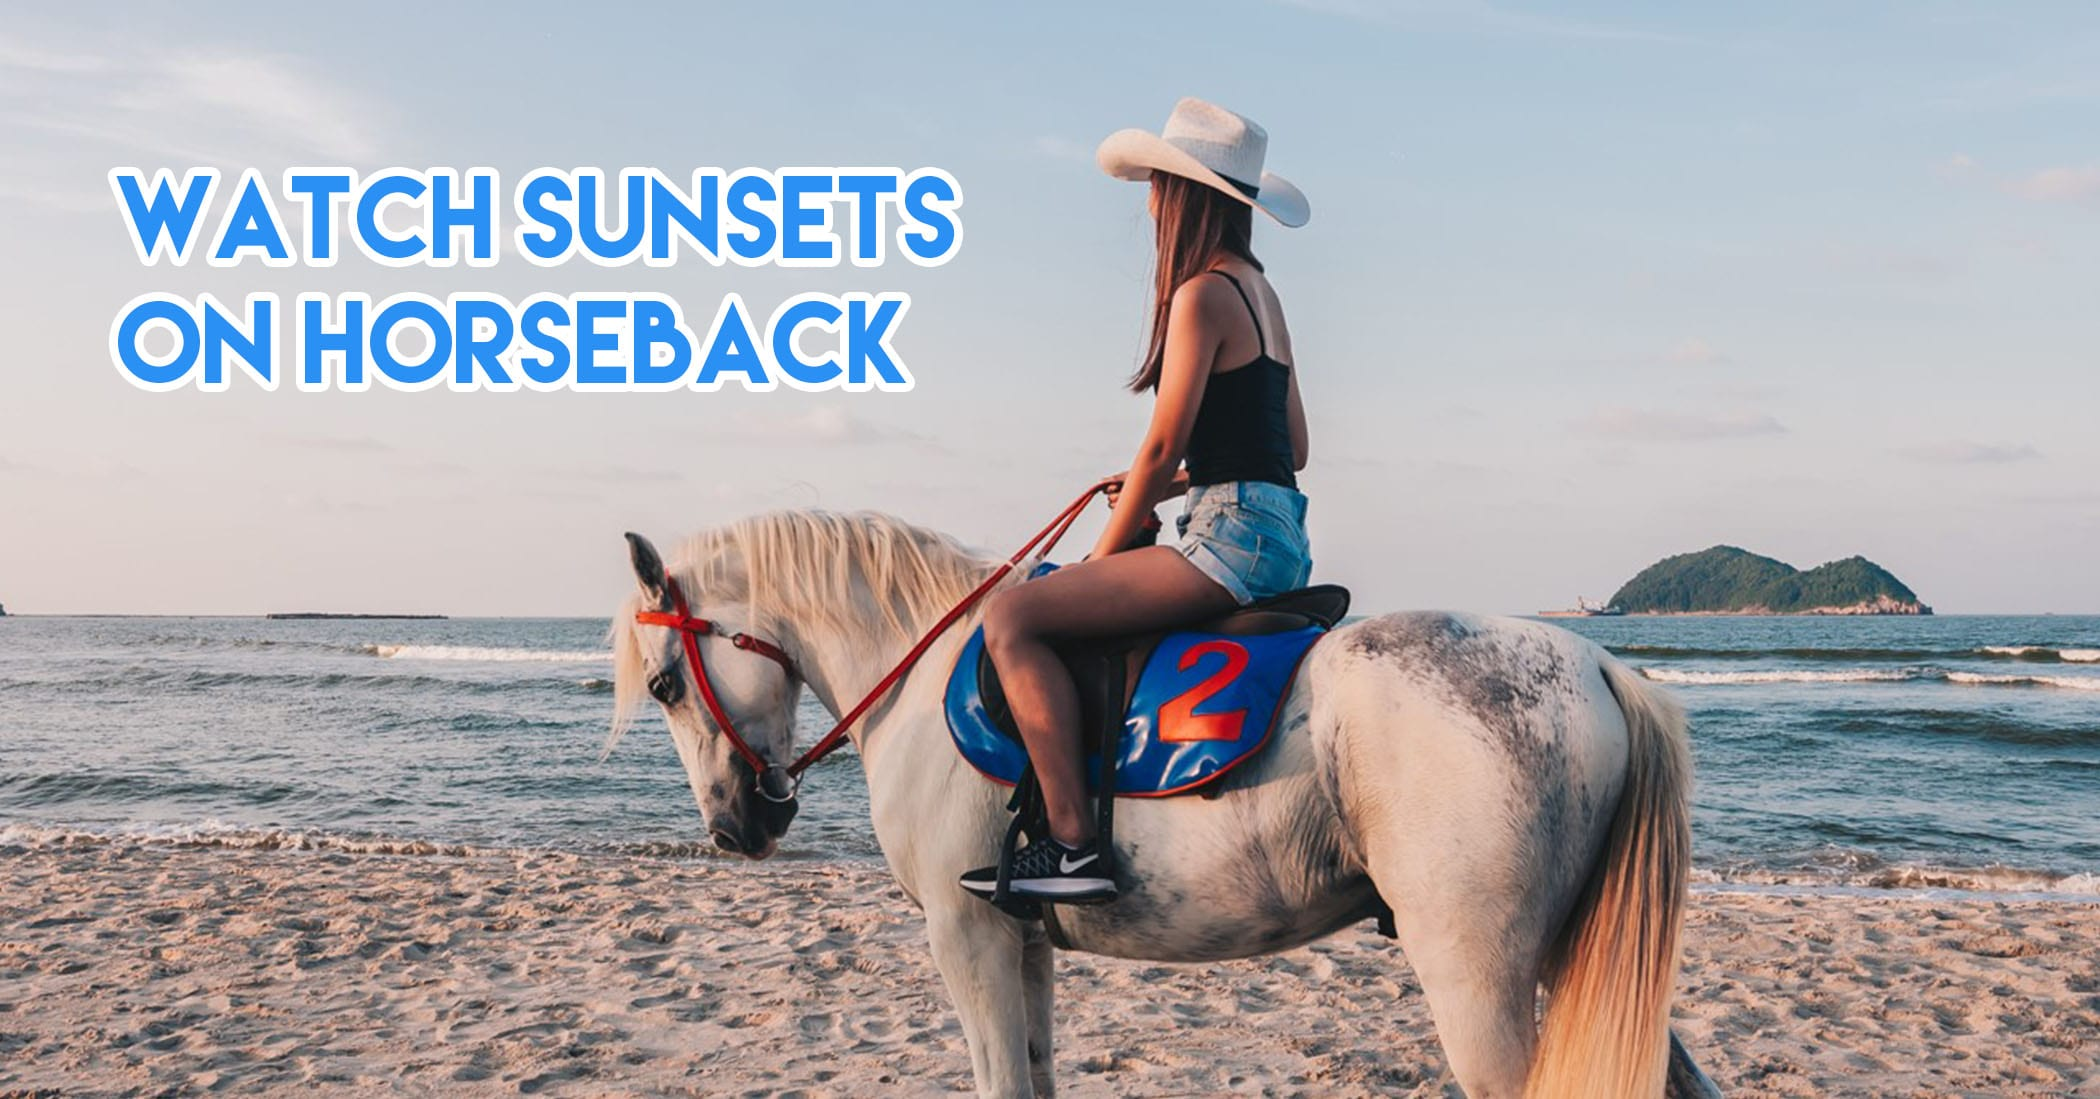 hat yai - watch sunsets on horseback